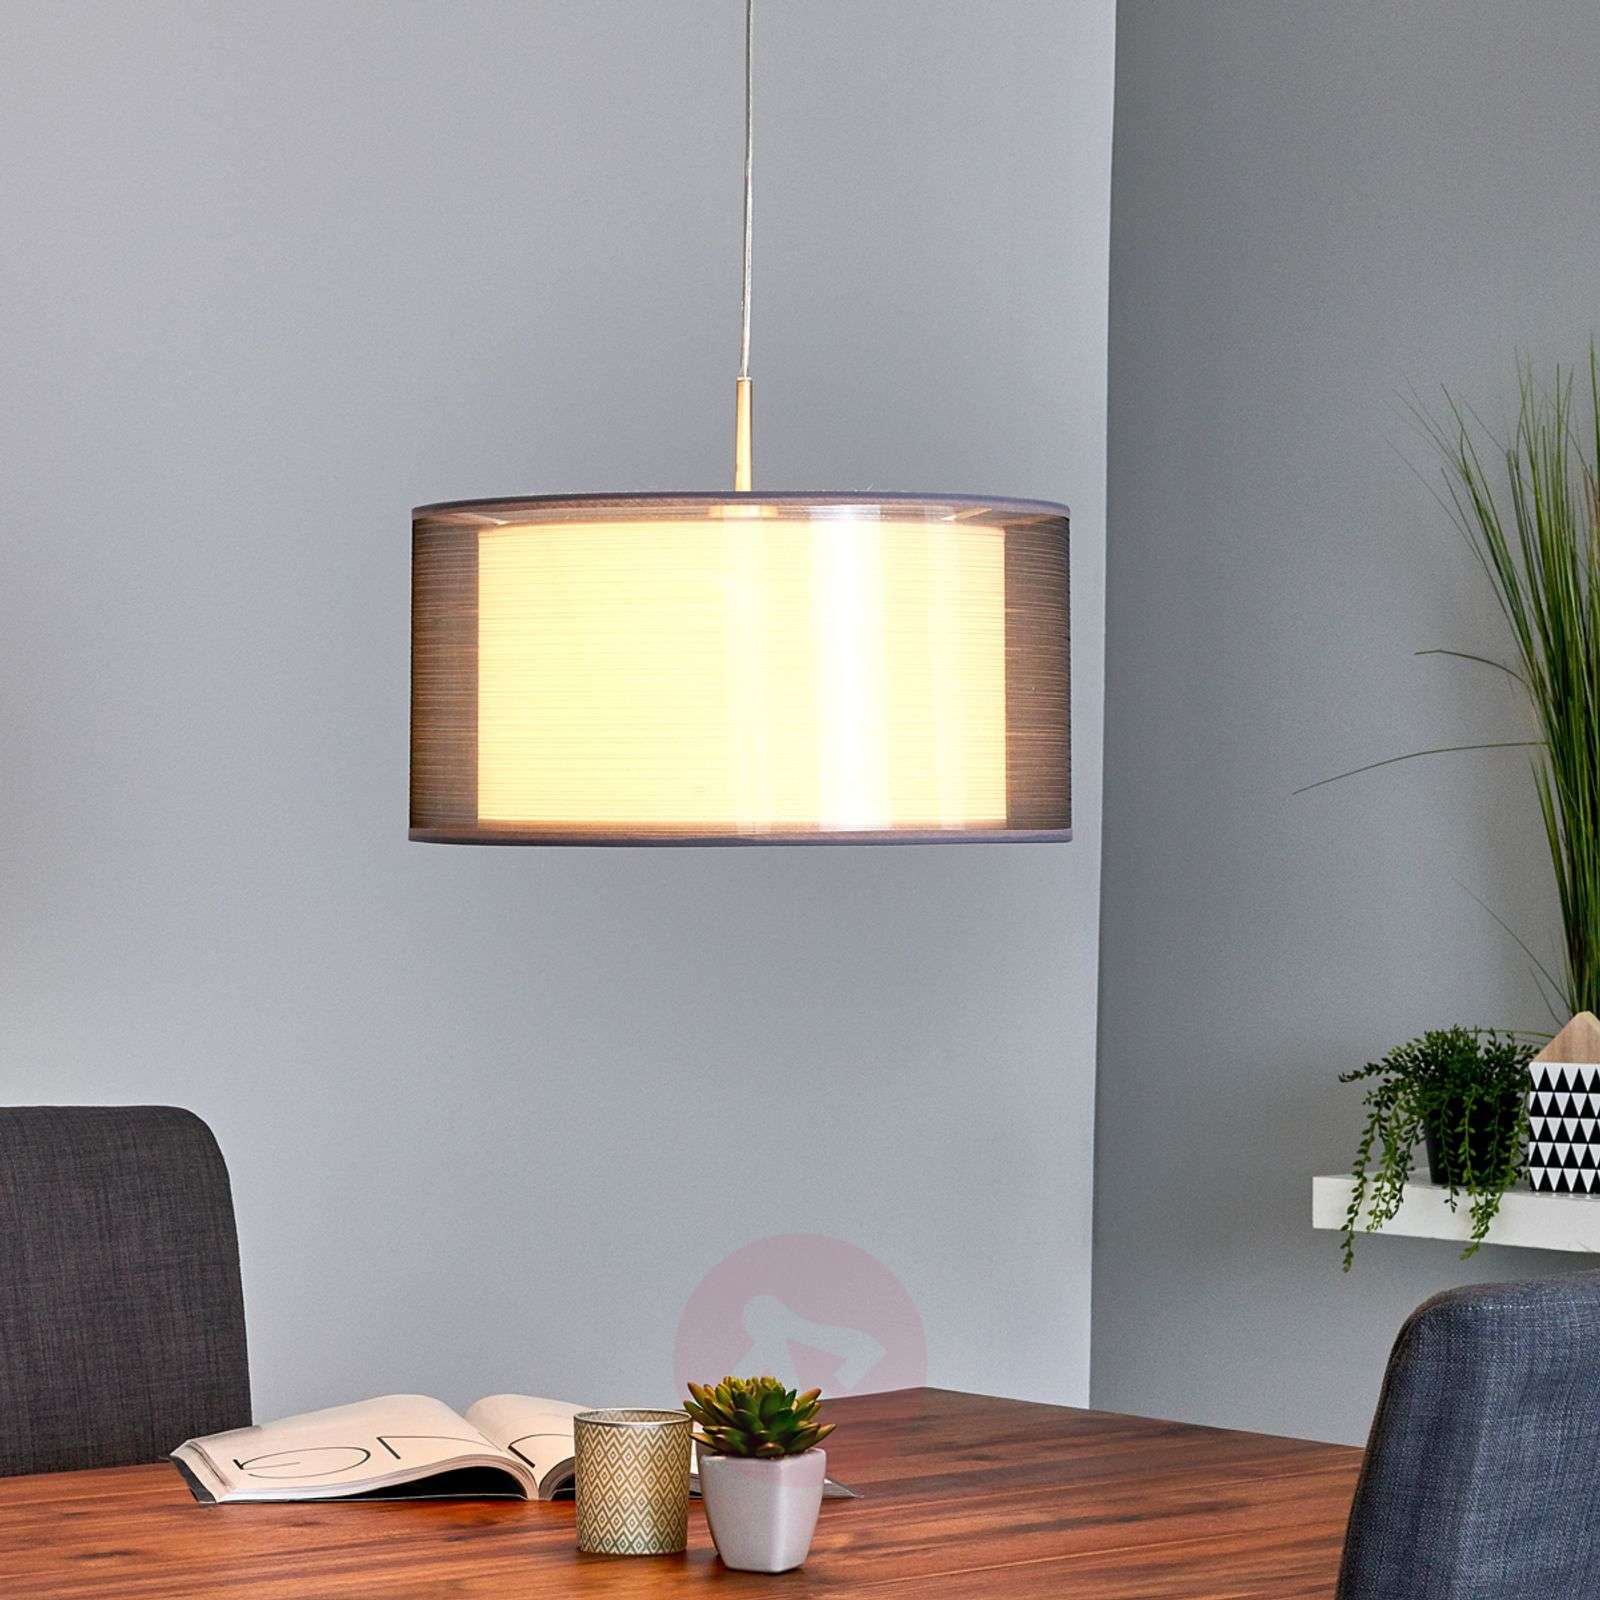 Grey Nica fabric pendant light-4018003-03